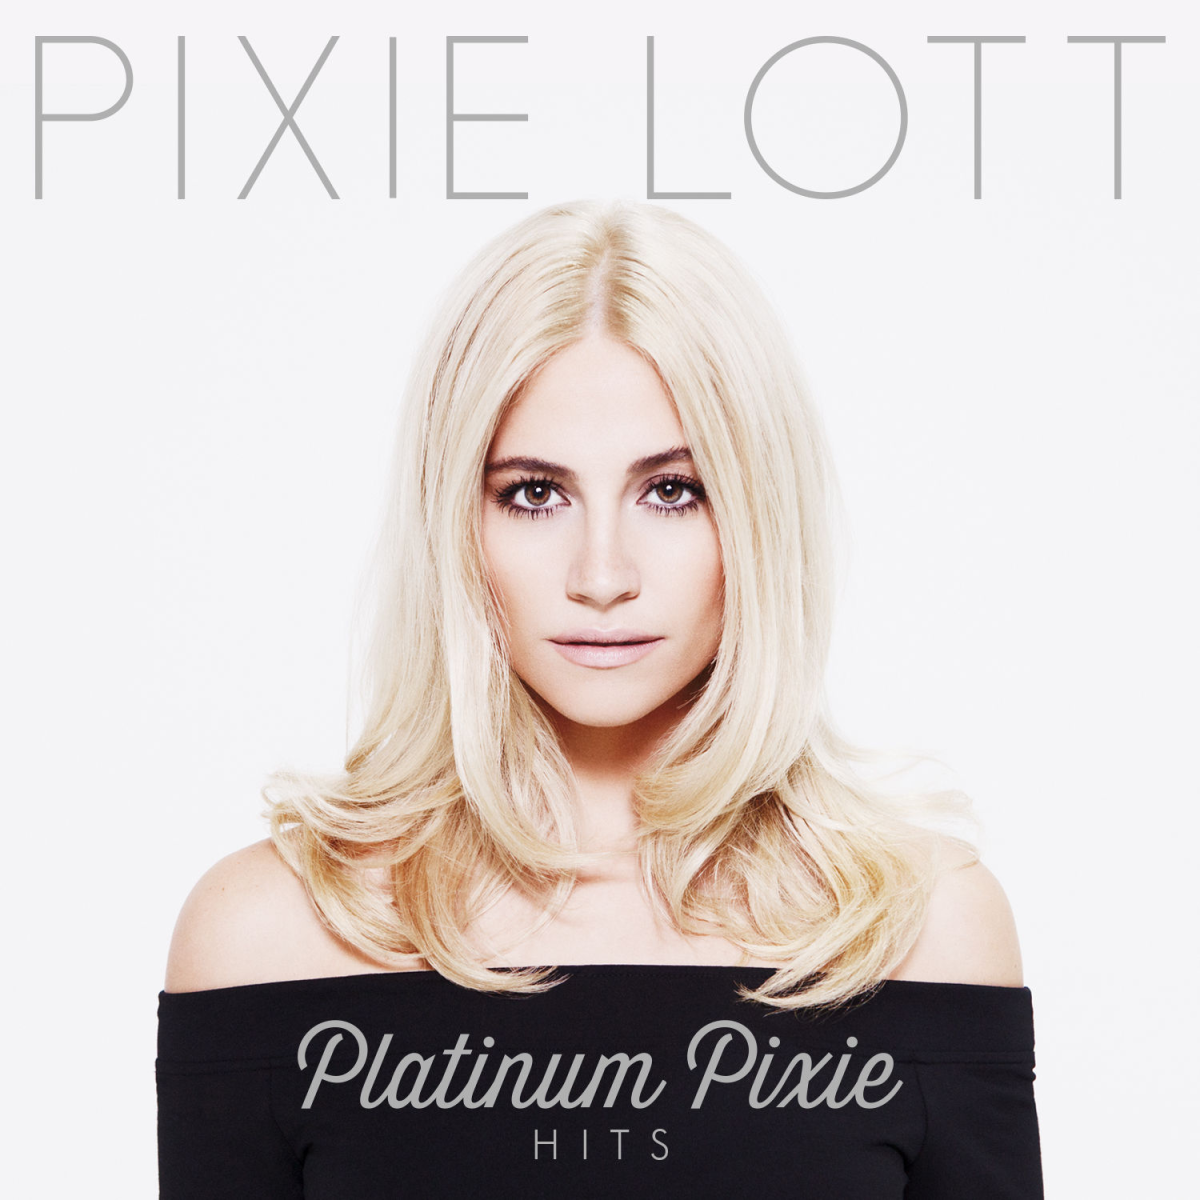 Pixie Lott - Platinum Pixie – Hits (Album) download